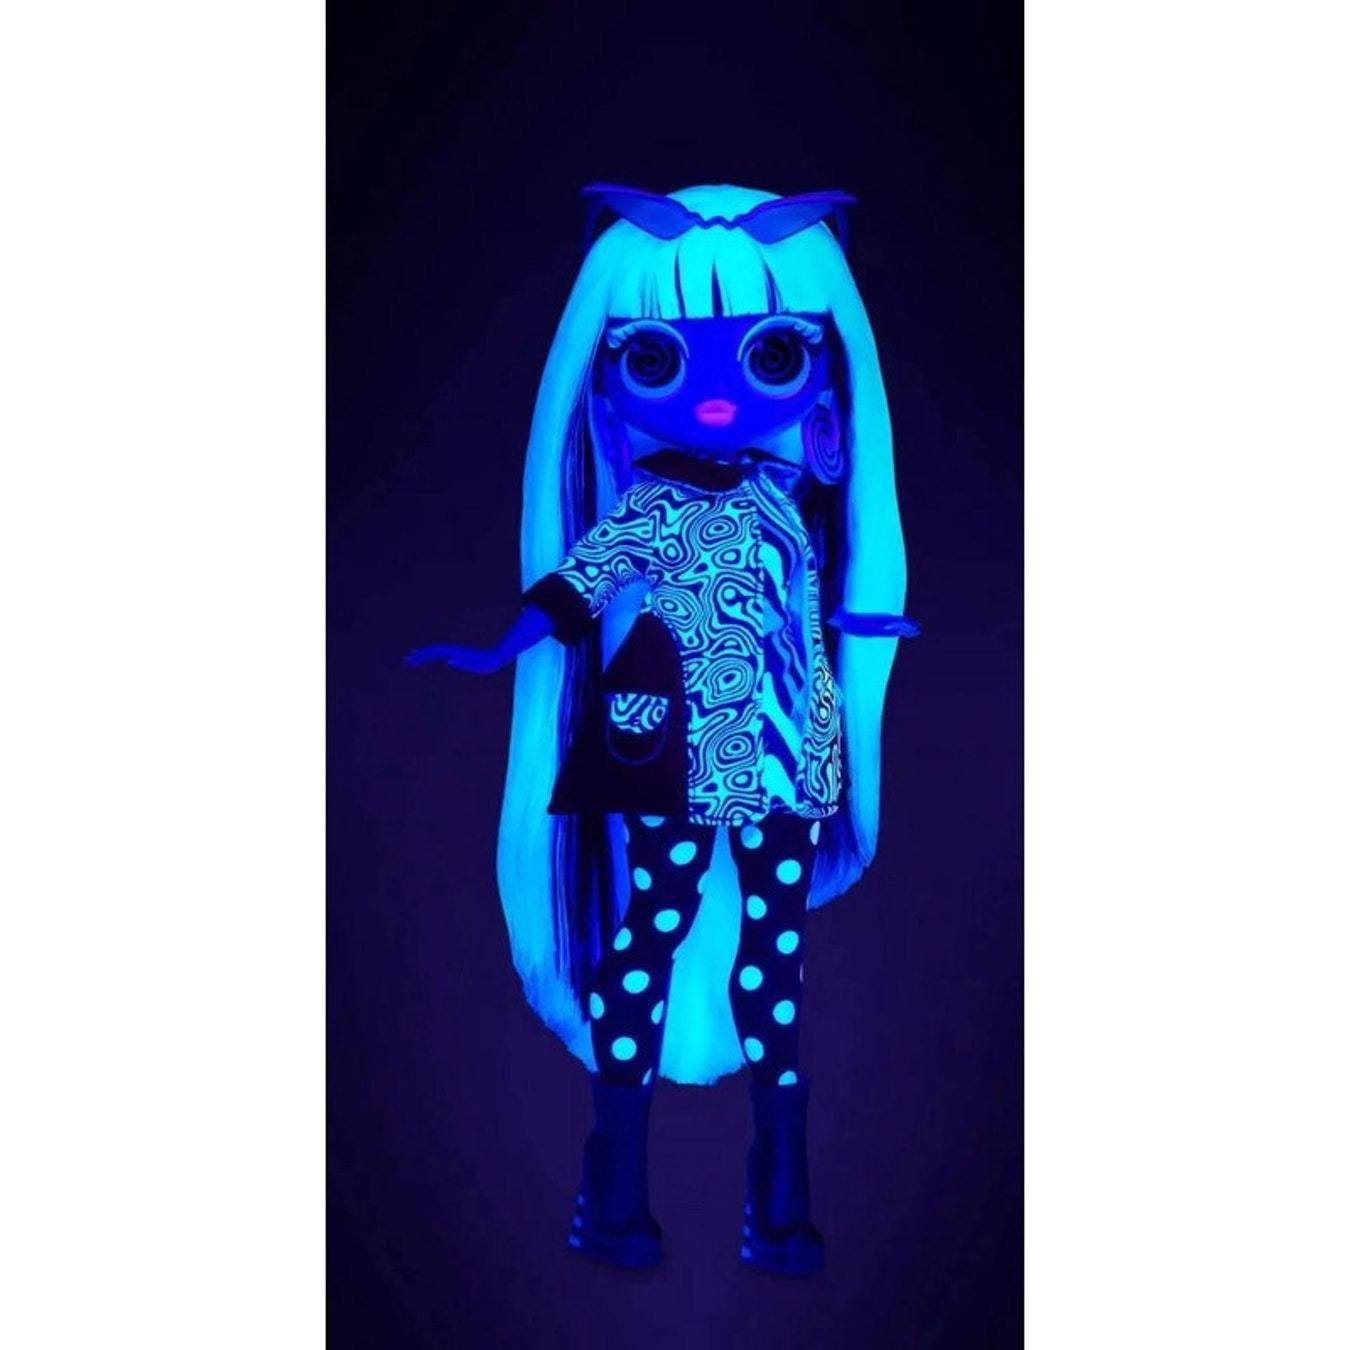 L.O.L. Surprise! O.M.G Lights Doll - Groovy Babe image